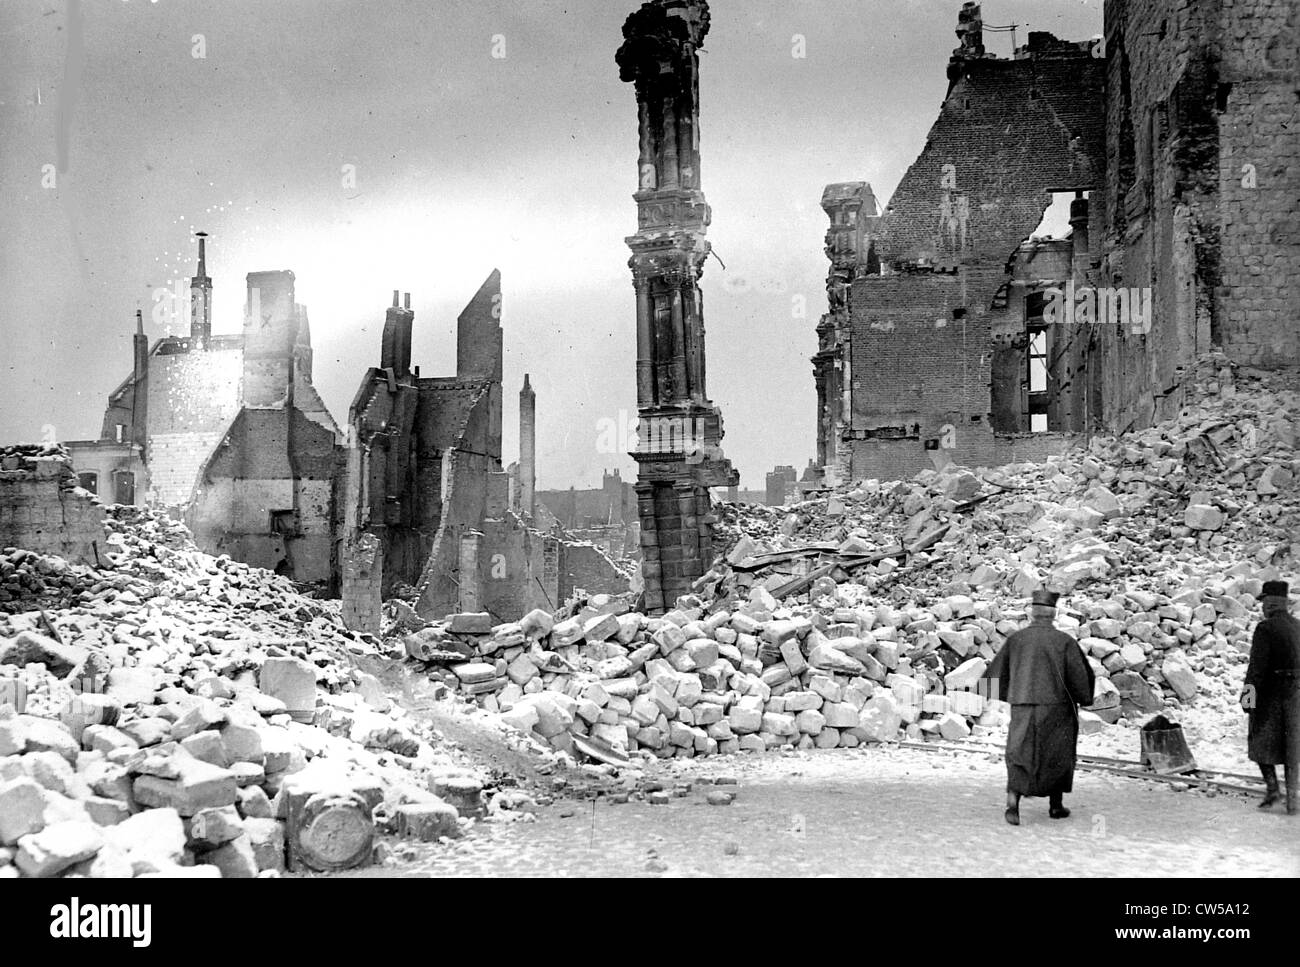 Arras after the bombing,  a badly hit neighborhood - Stock Image